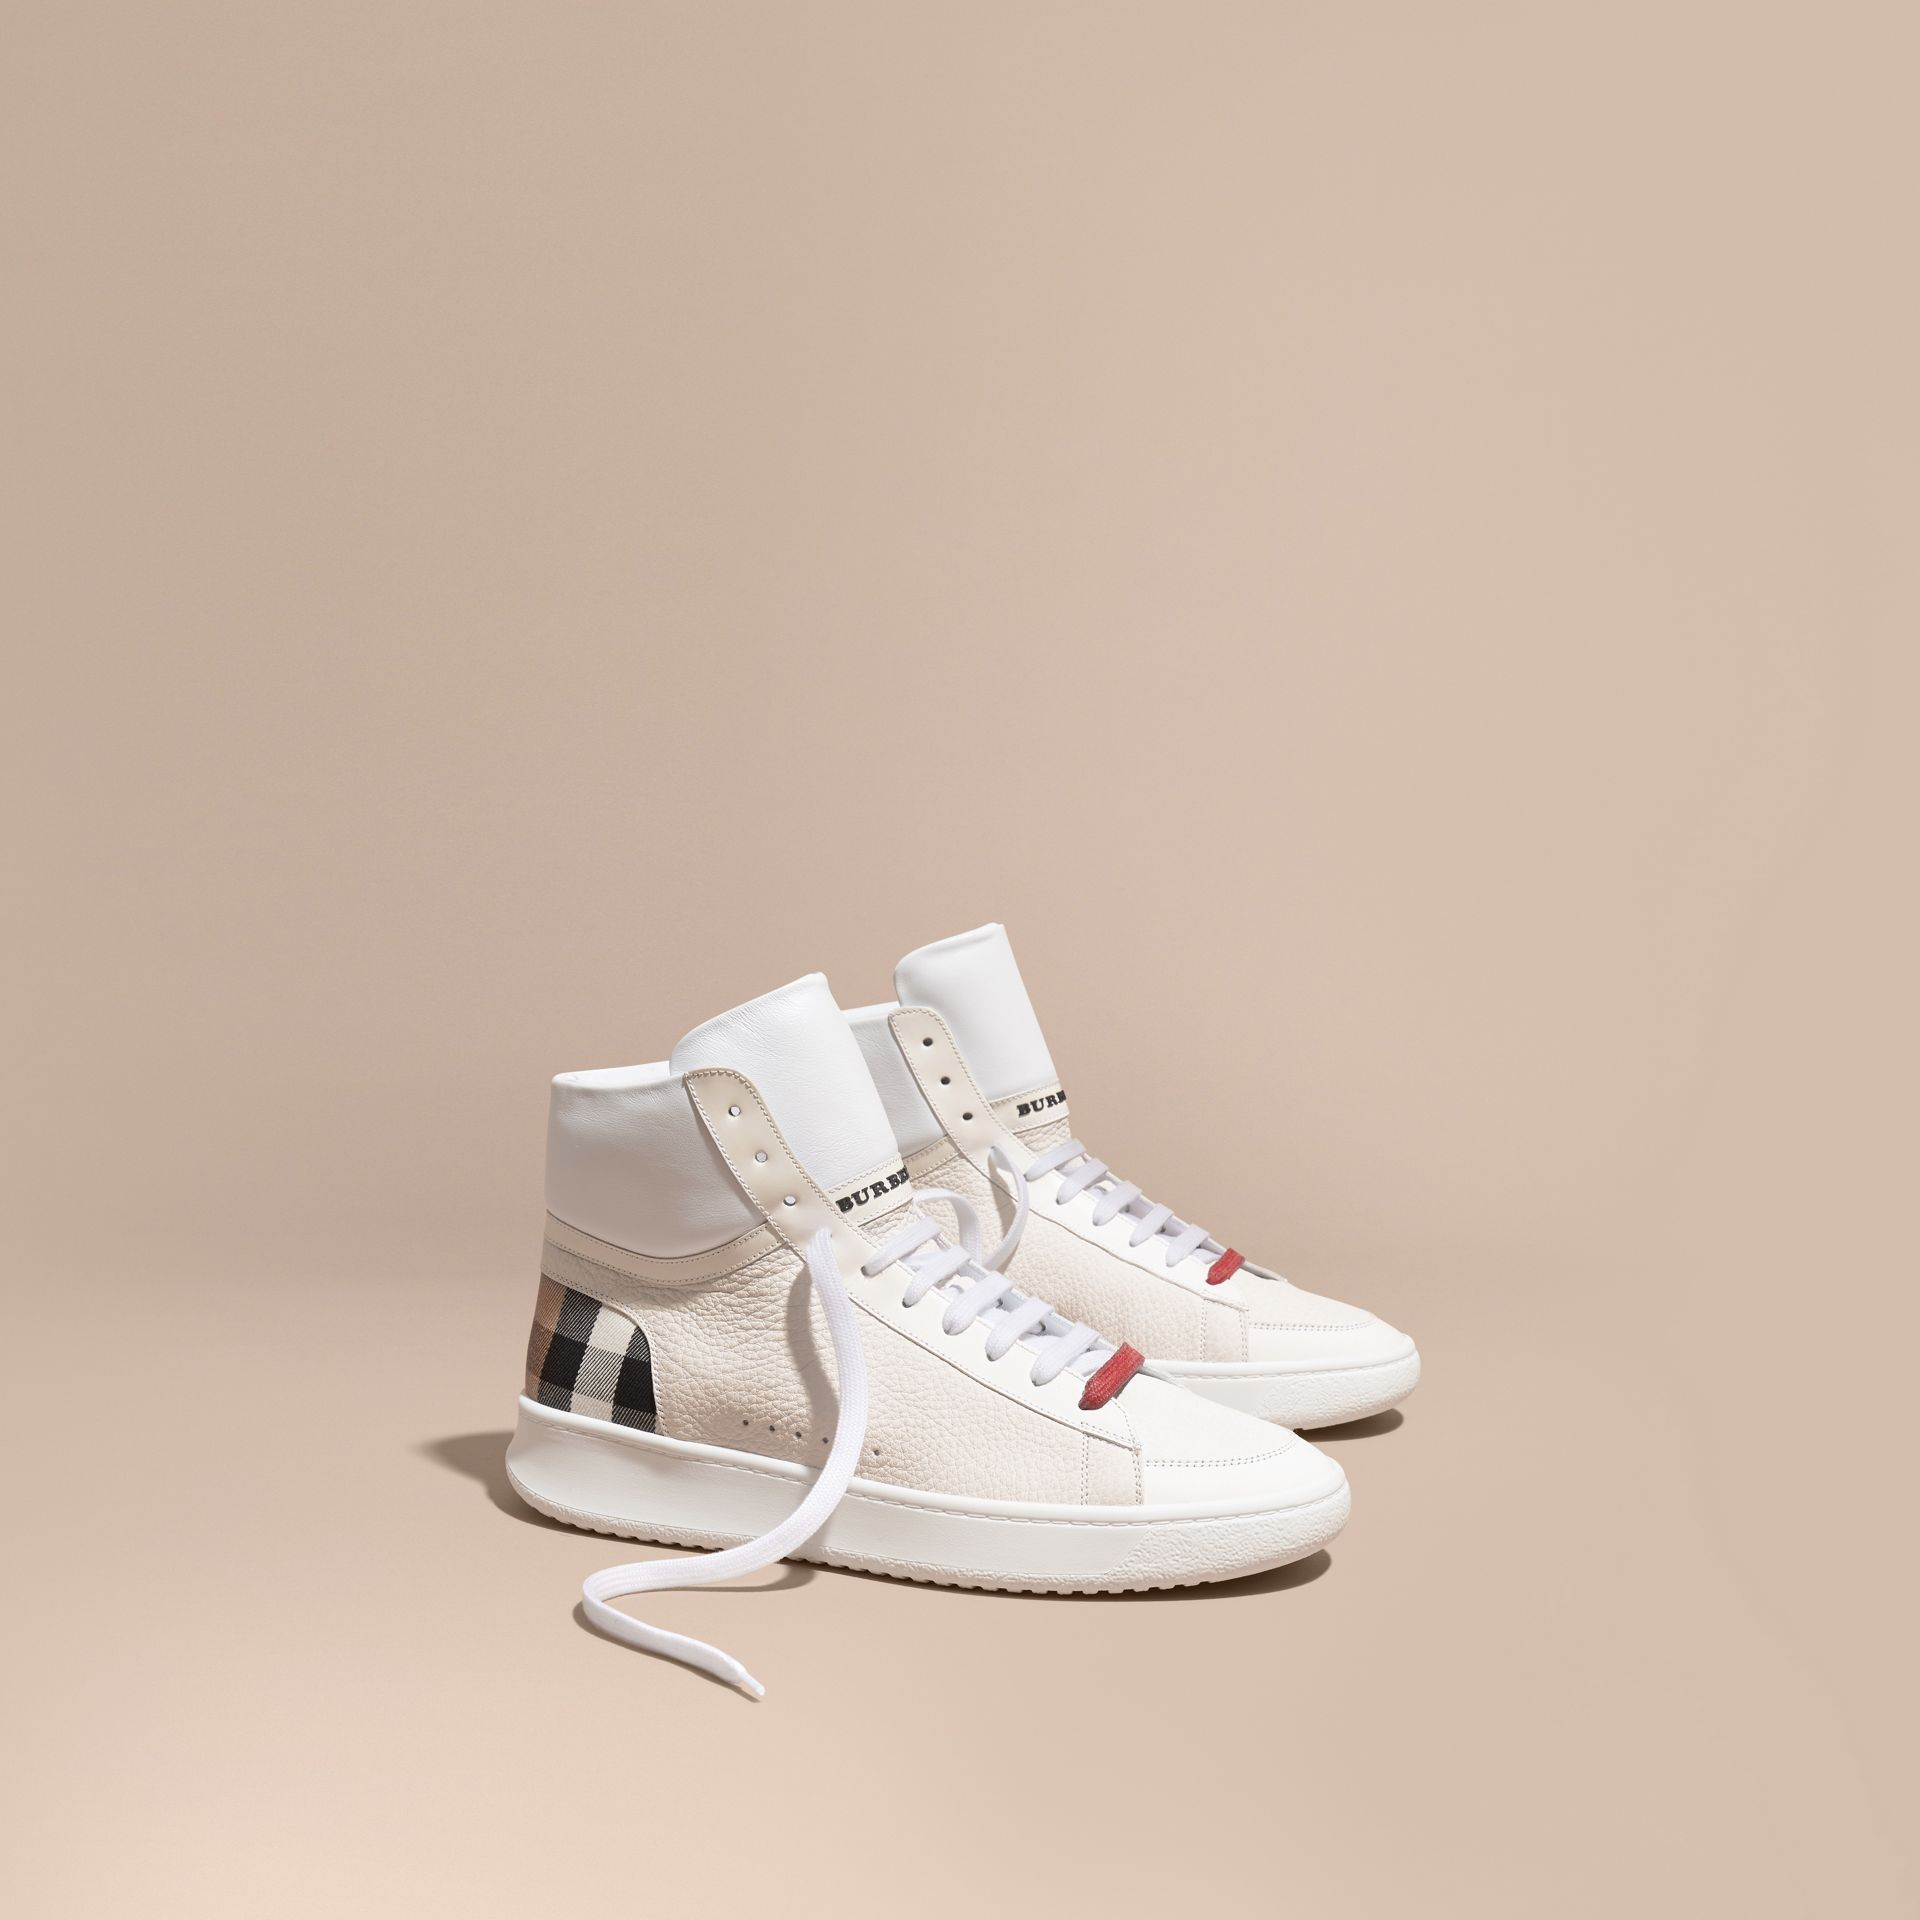 House check/optic white Check Detail Leather High-top Trainers House Check/optic White - gallery image 1